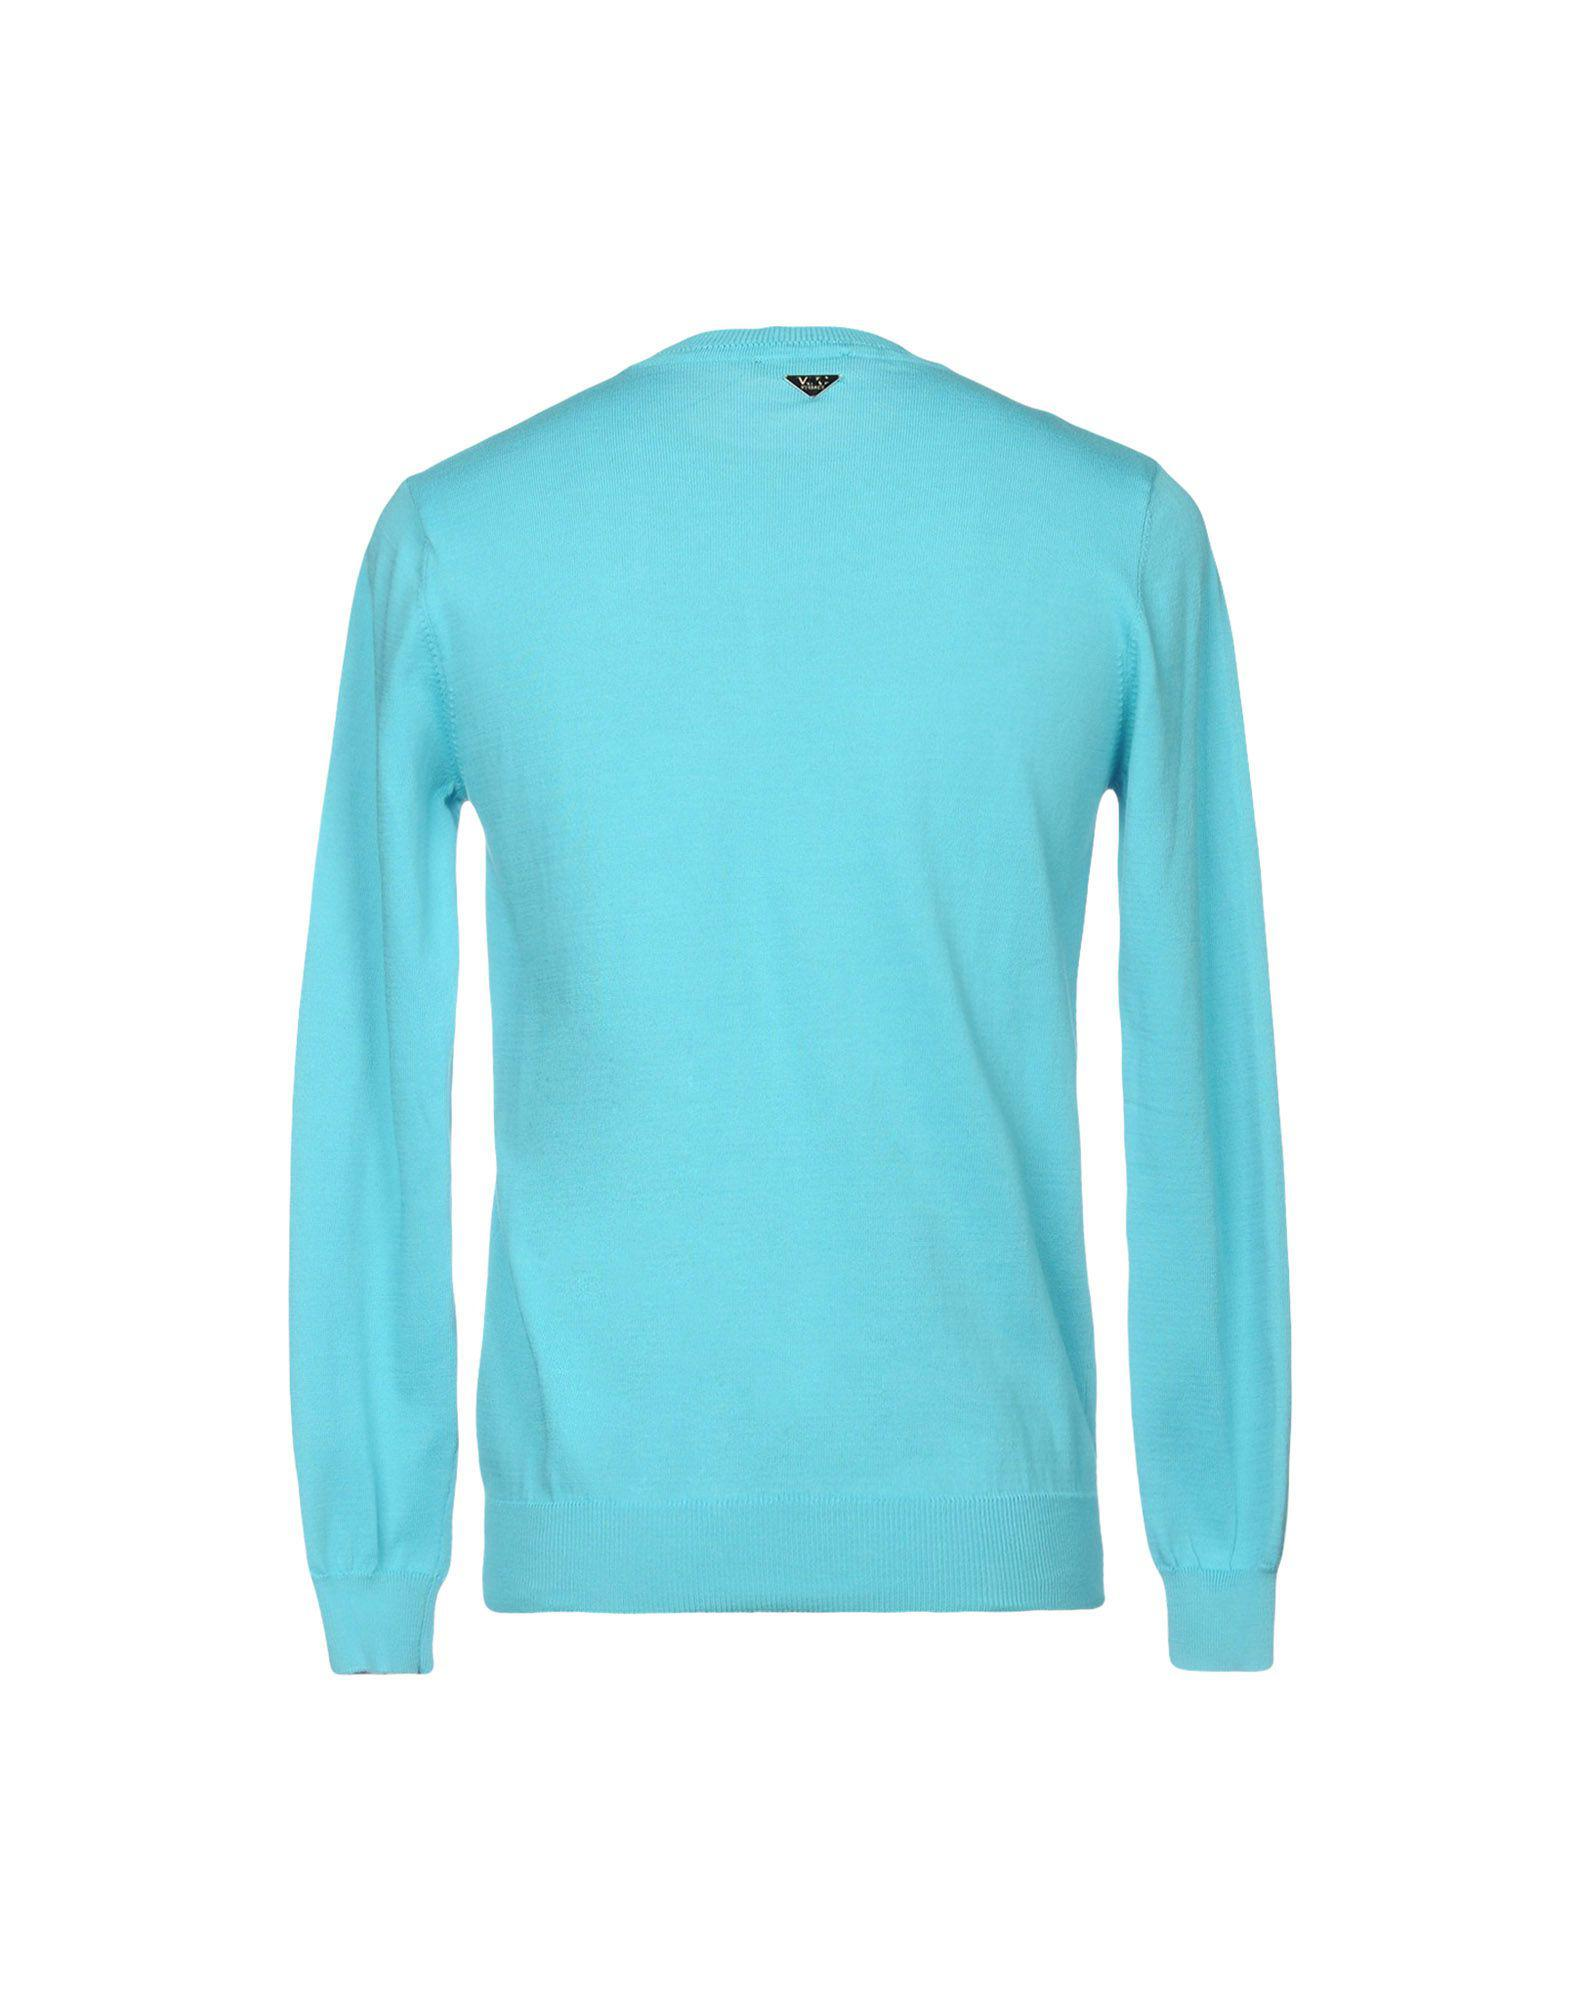 Versace Jeans Couture Cotton Jumper in Turquoise (Blue) for Men